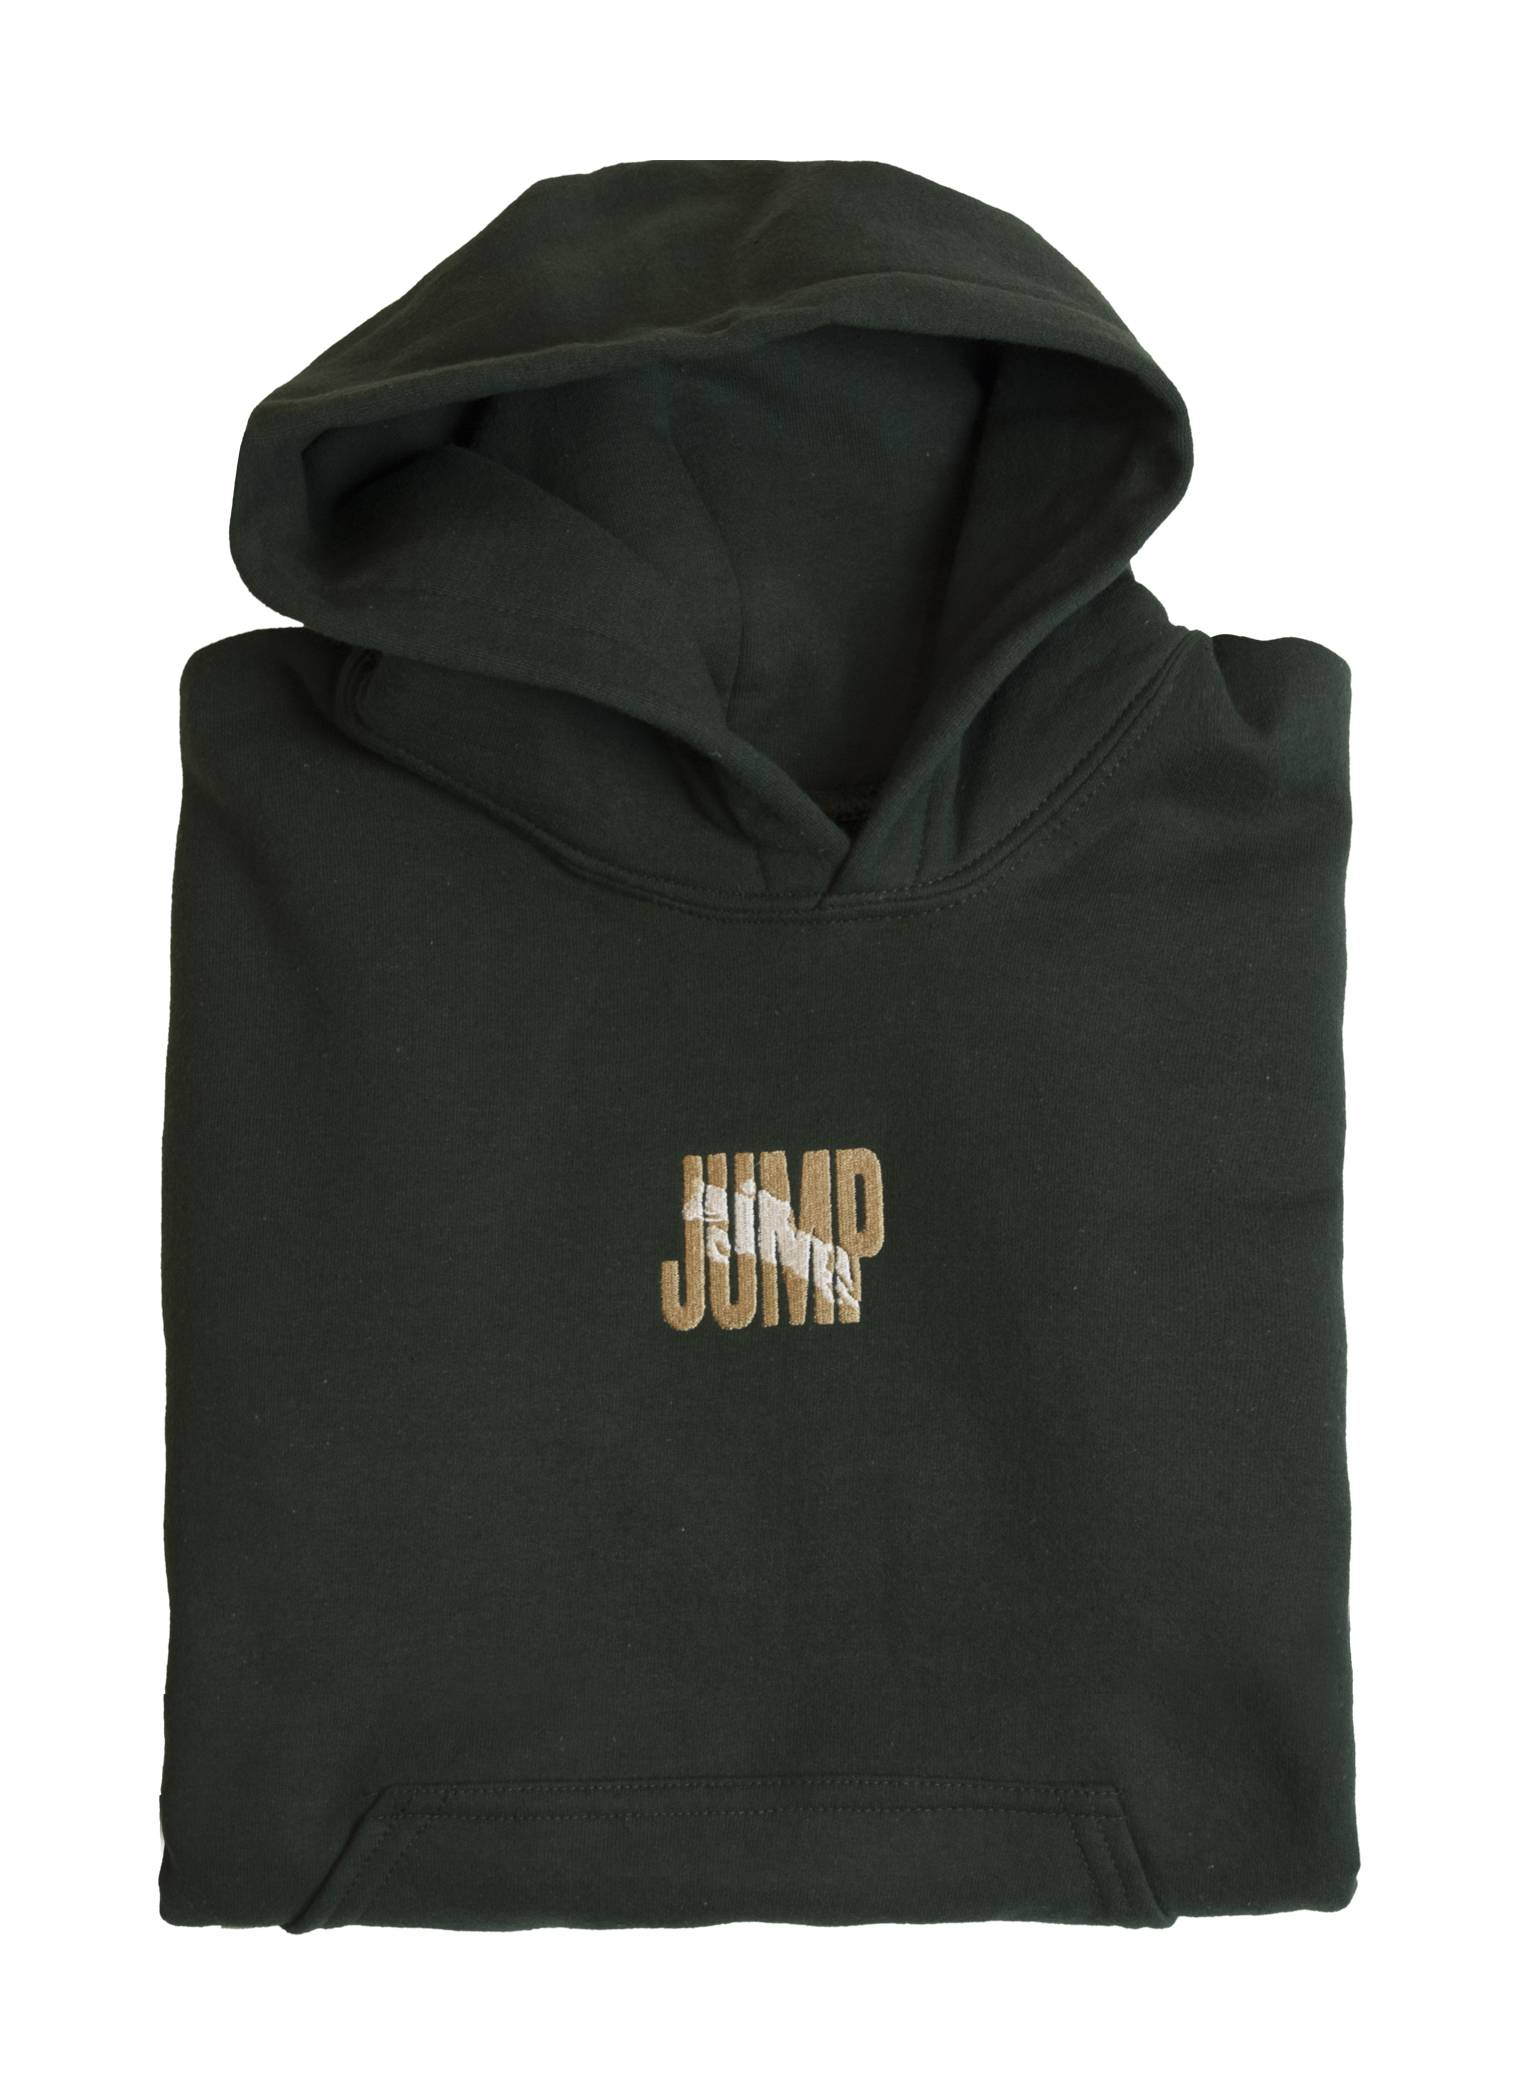 Stirrups Jump Hooded Sweatshirt - Kids